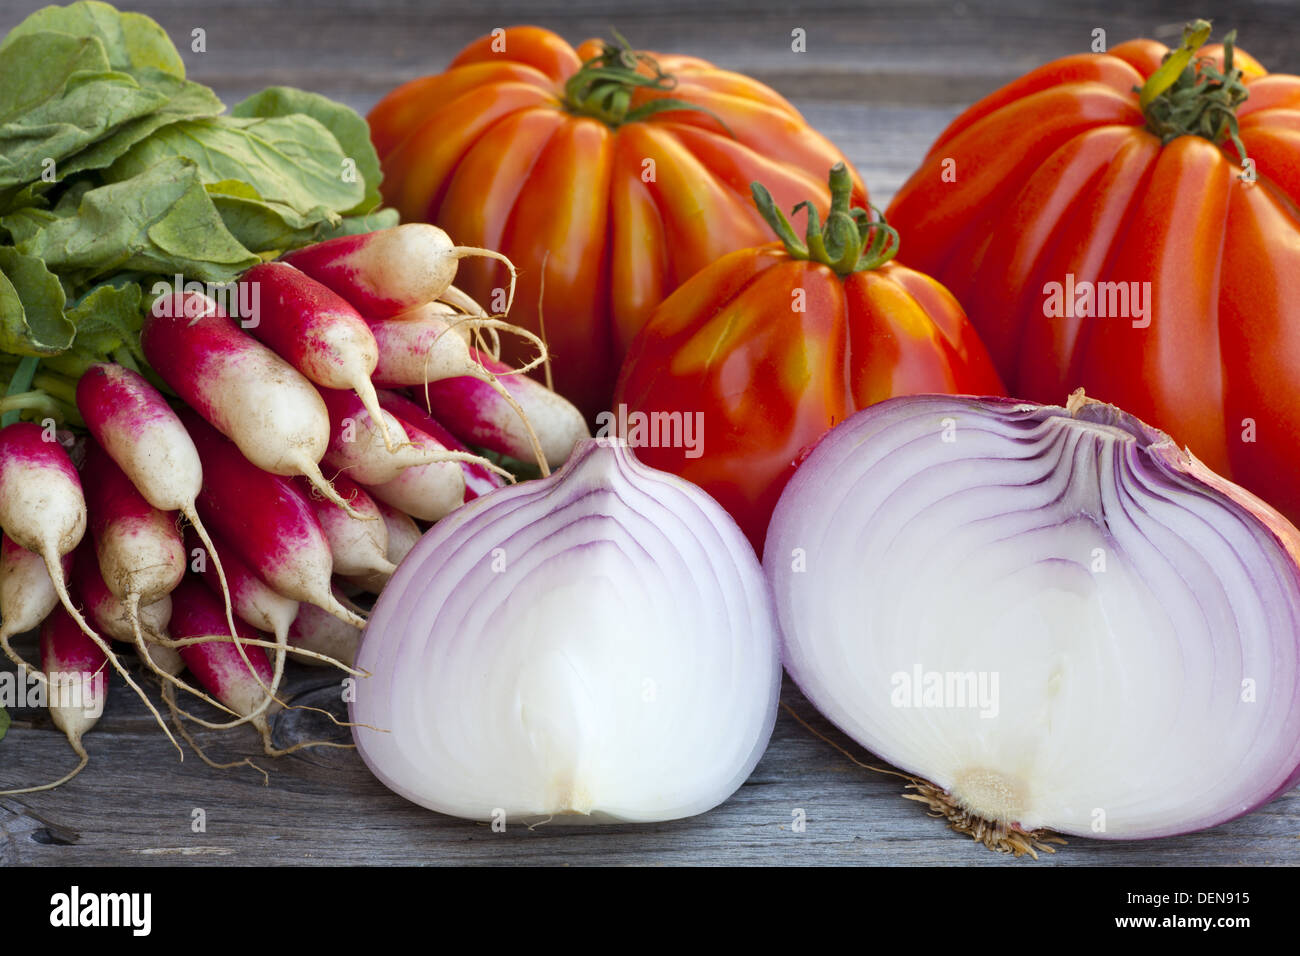 Coeur de Boeuf Tomatoes, large red Onions and Radishes fresh from the Weekly Market on a old wooden Table - Stock Image